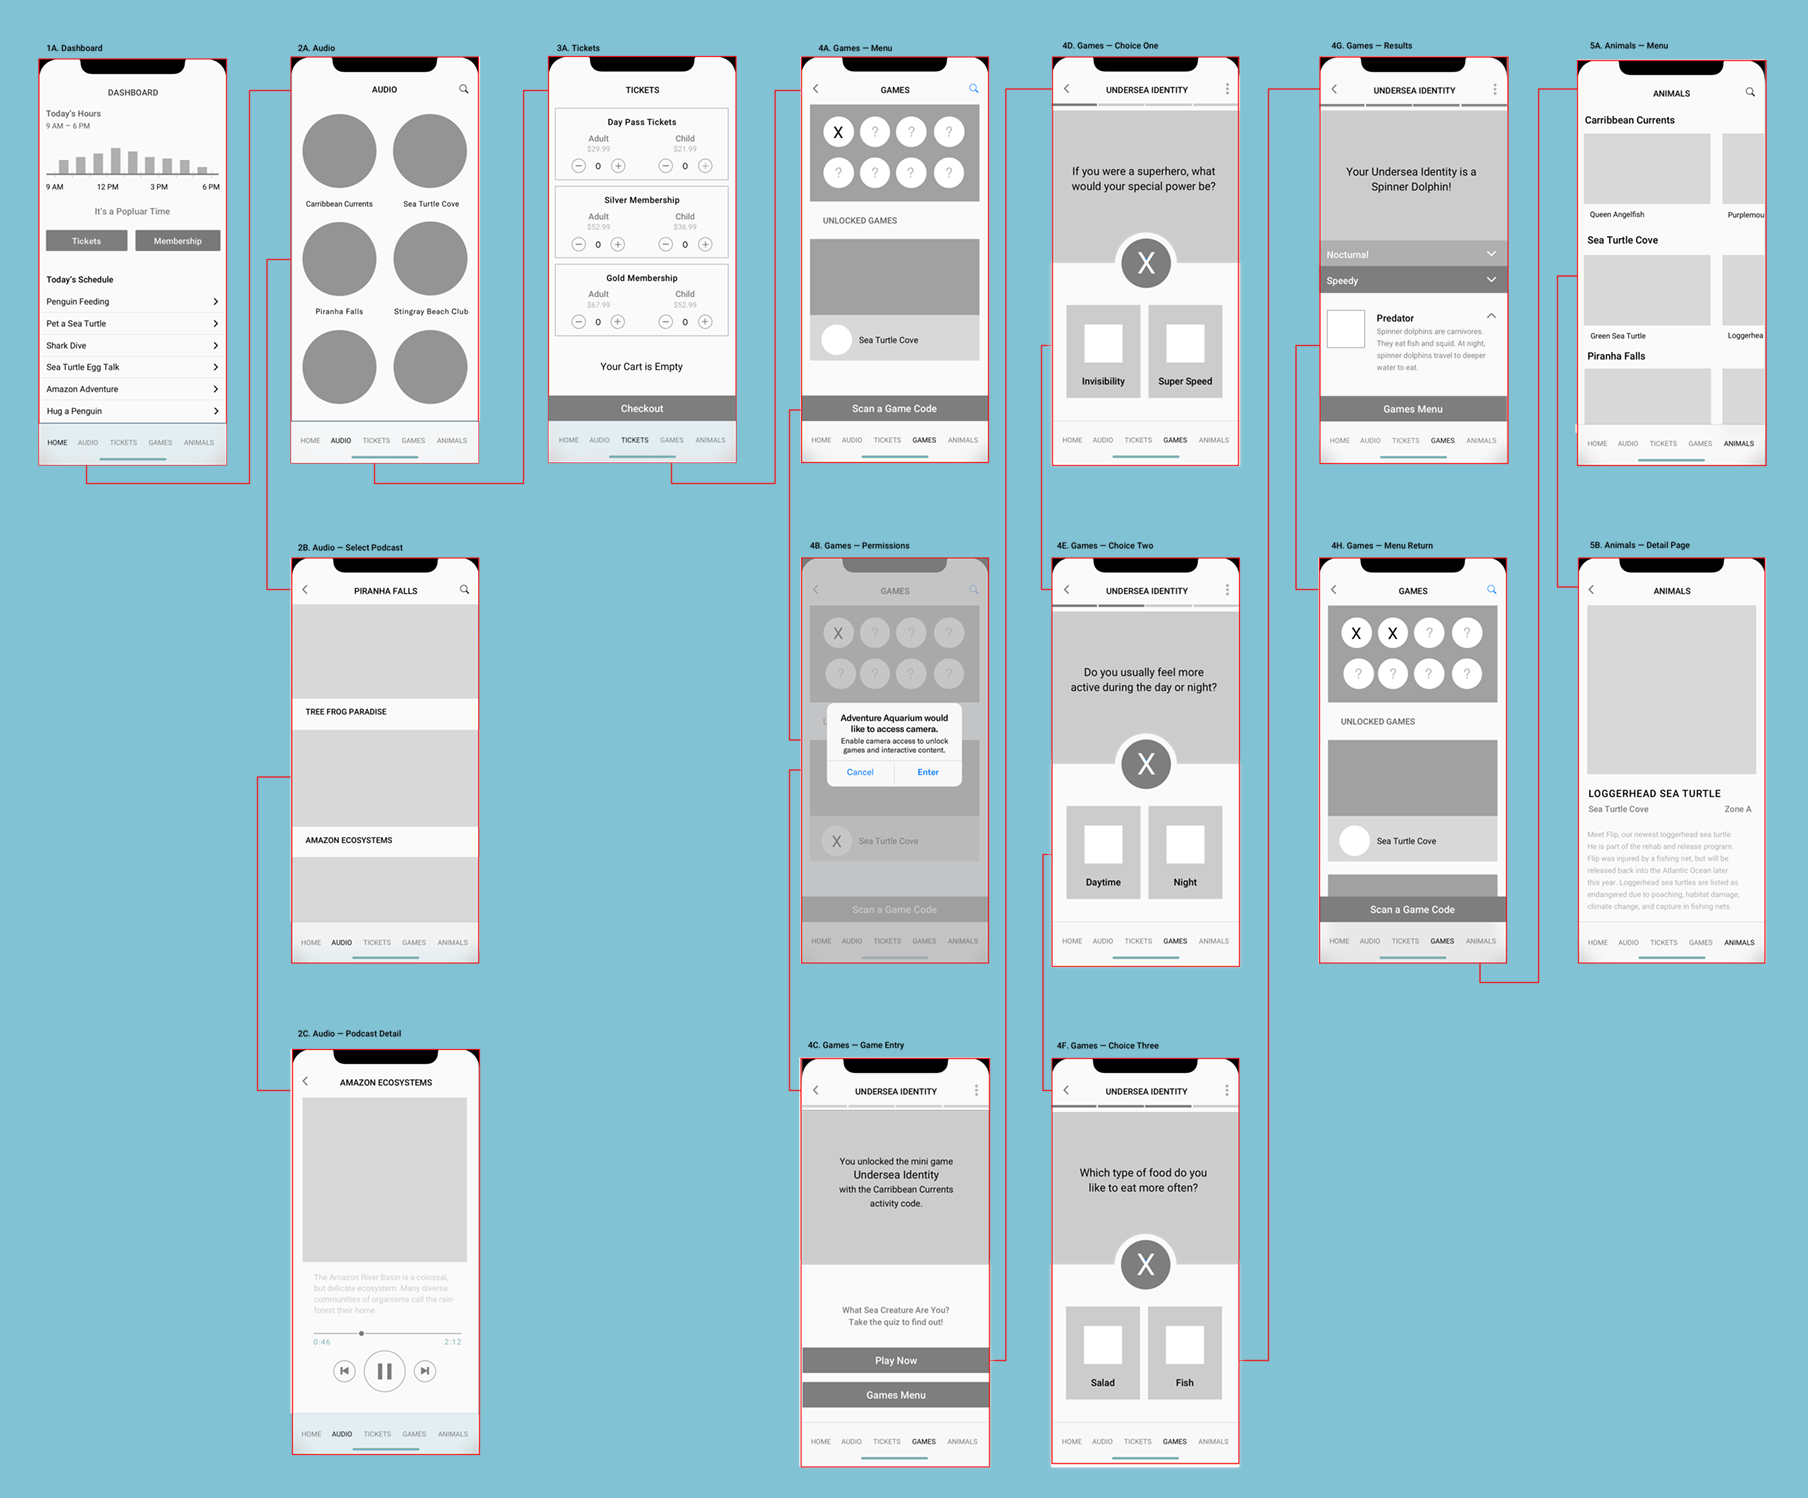 This set of wireframes show the complete user flow before branding, images, and color have been added.